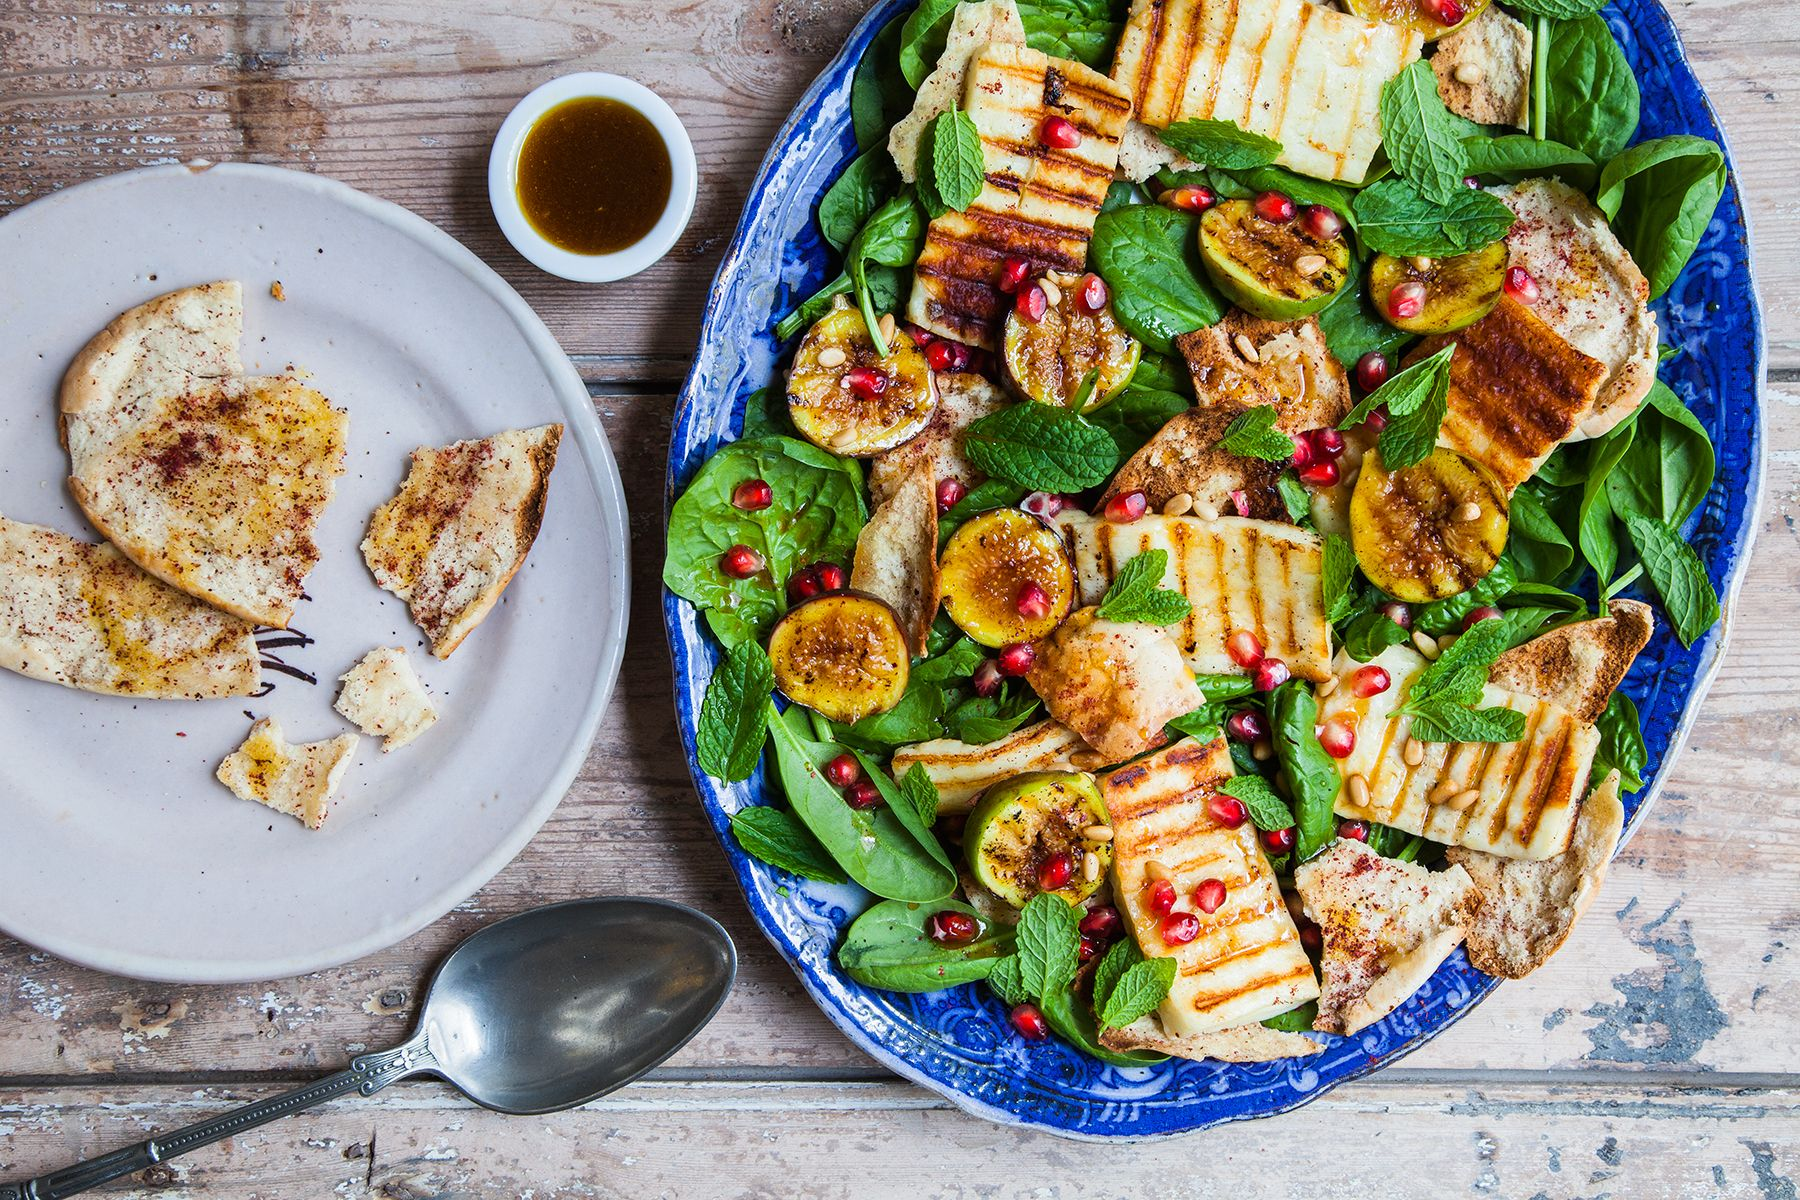 Grilled fig and halloumi salad with spinach and pita. #summer #MiddleEastern #Mediterranean #healthy